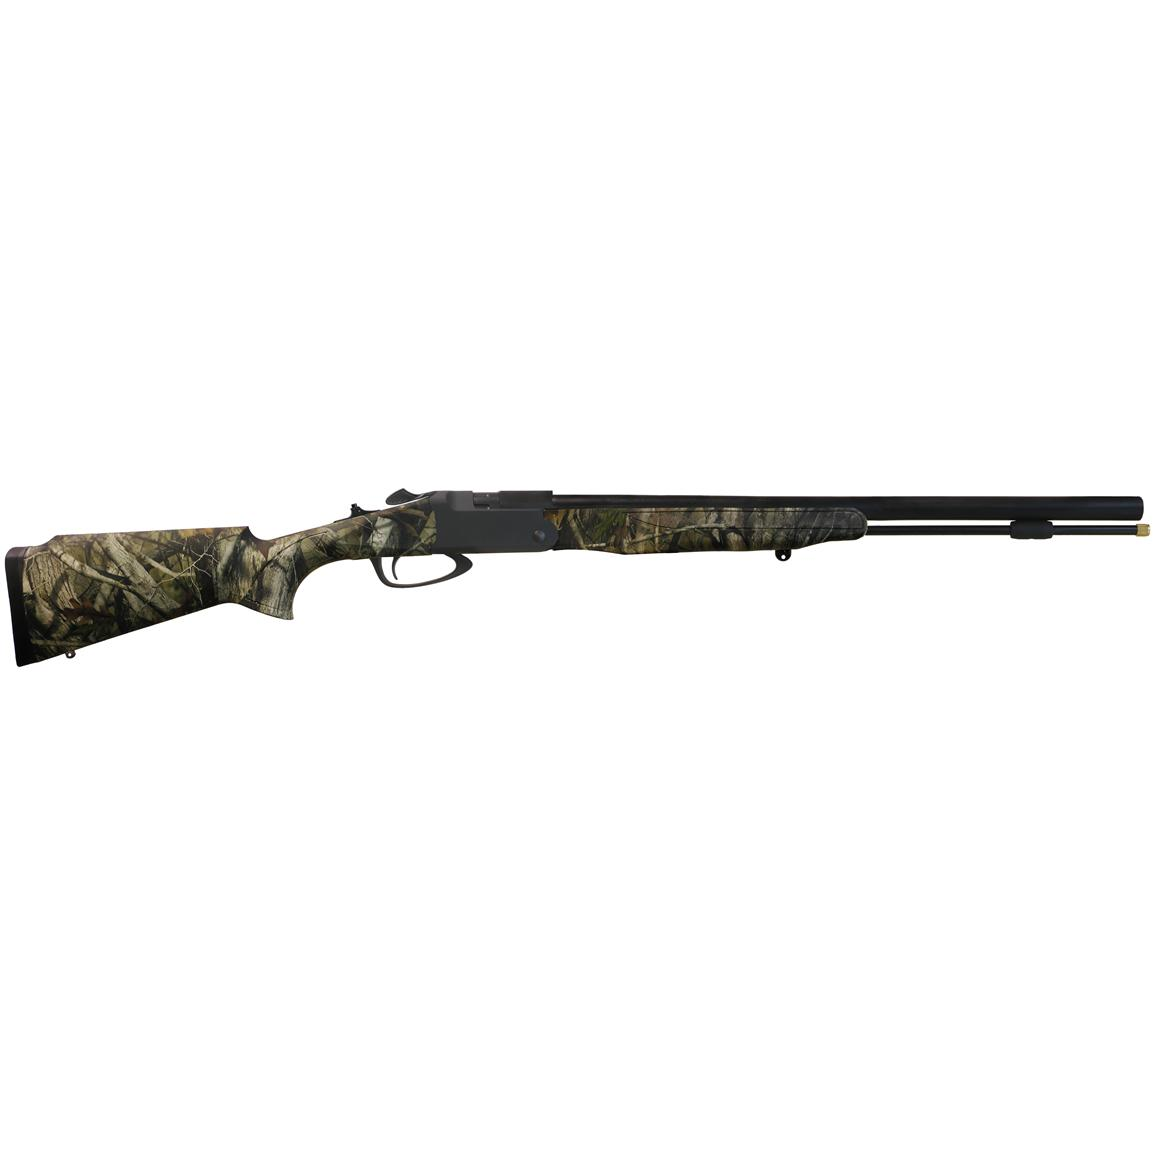 LHR Sporting Arms® Redemption™ .50 Cal. Black Powder Rifle, Camo / Armornite